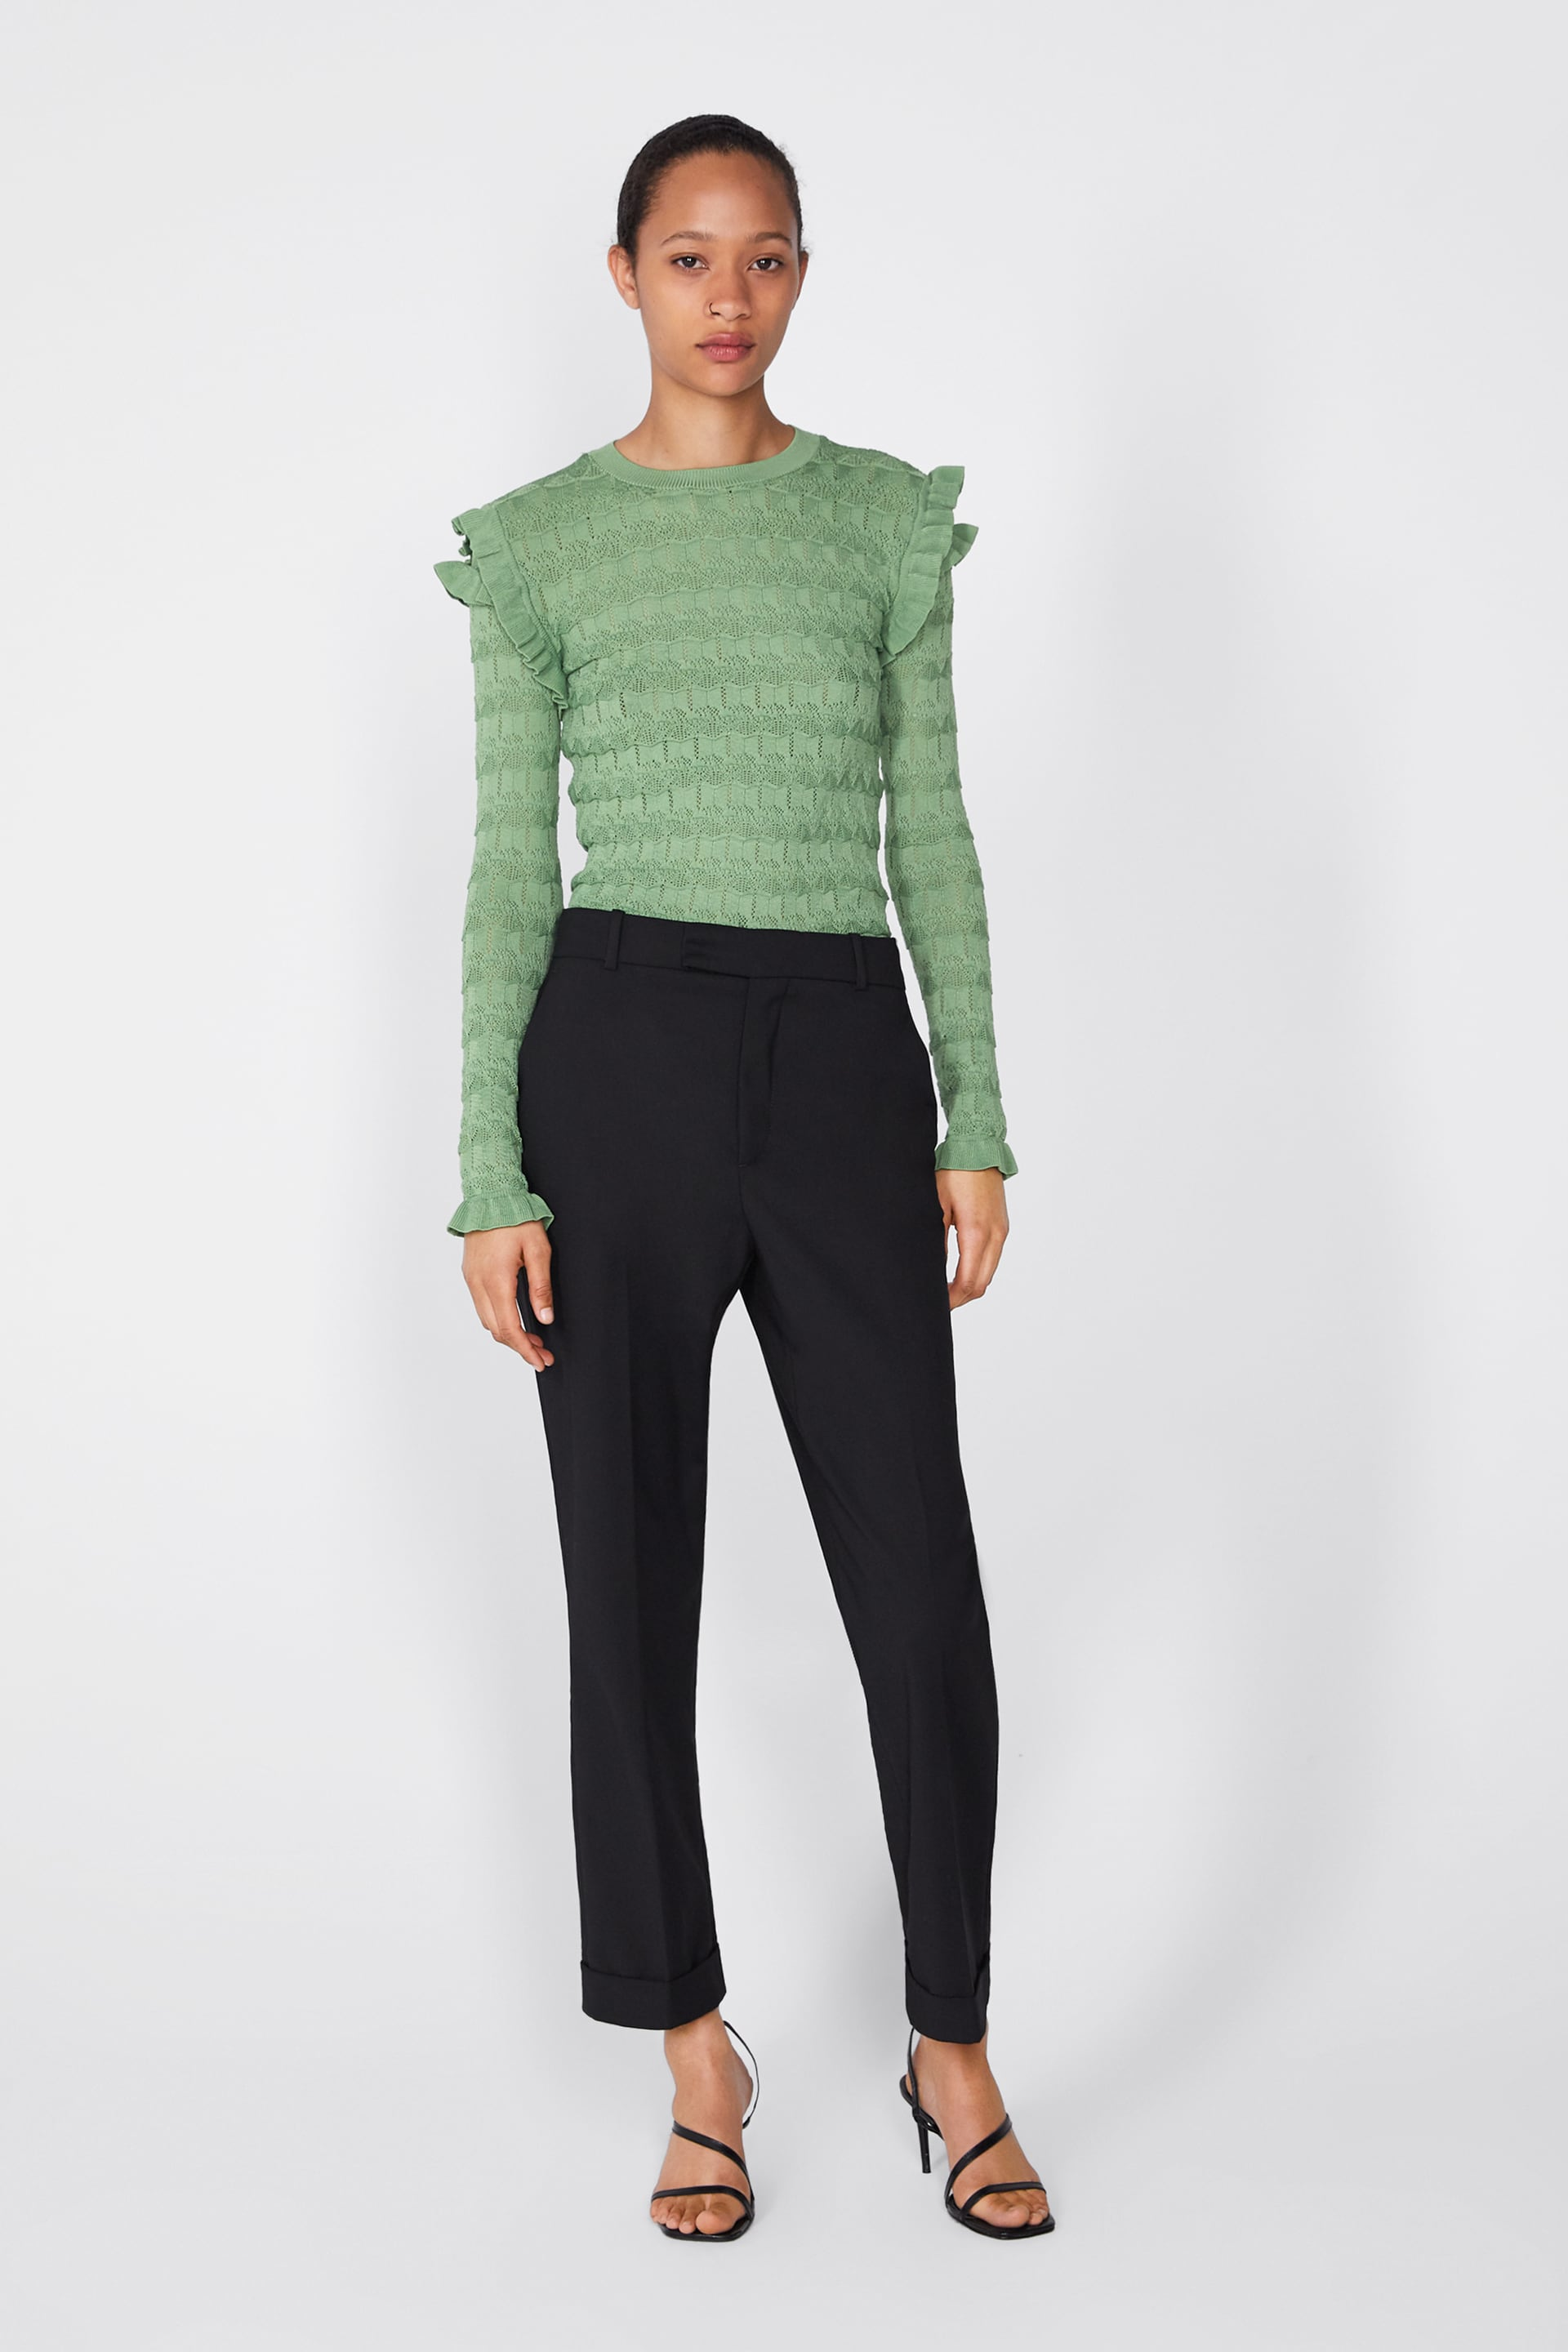 d0c4c36a92 Textured Weave Sweater With Ruffles